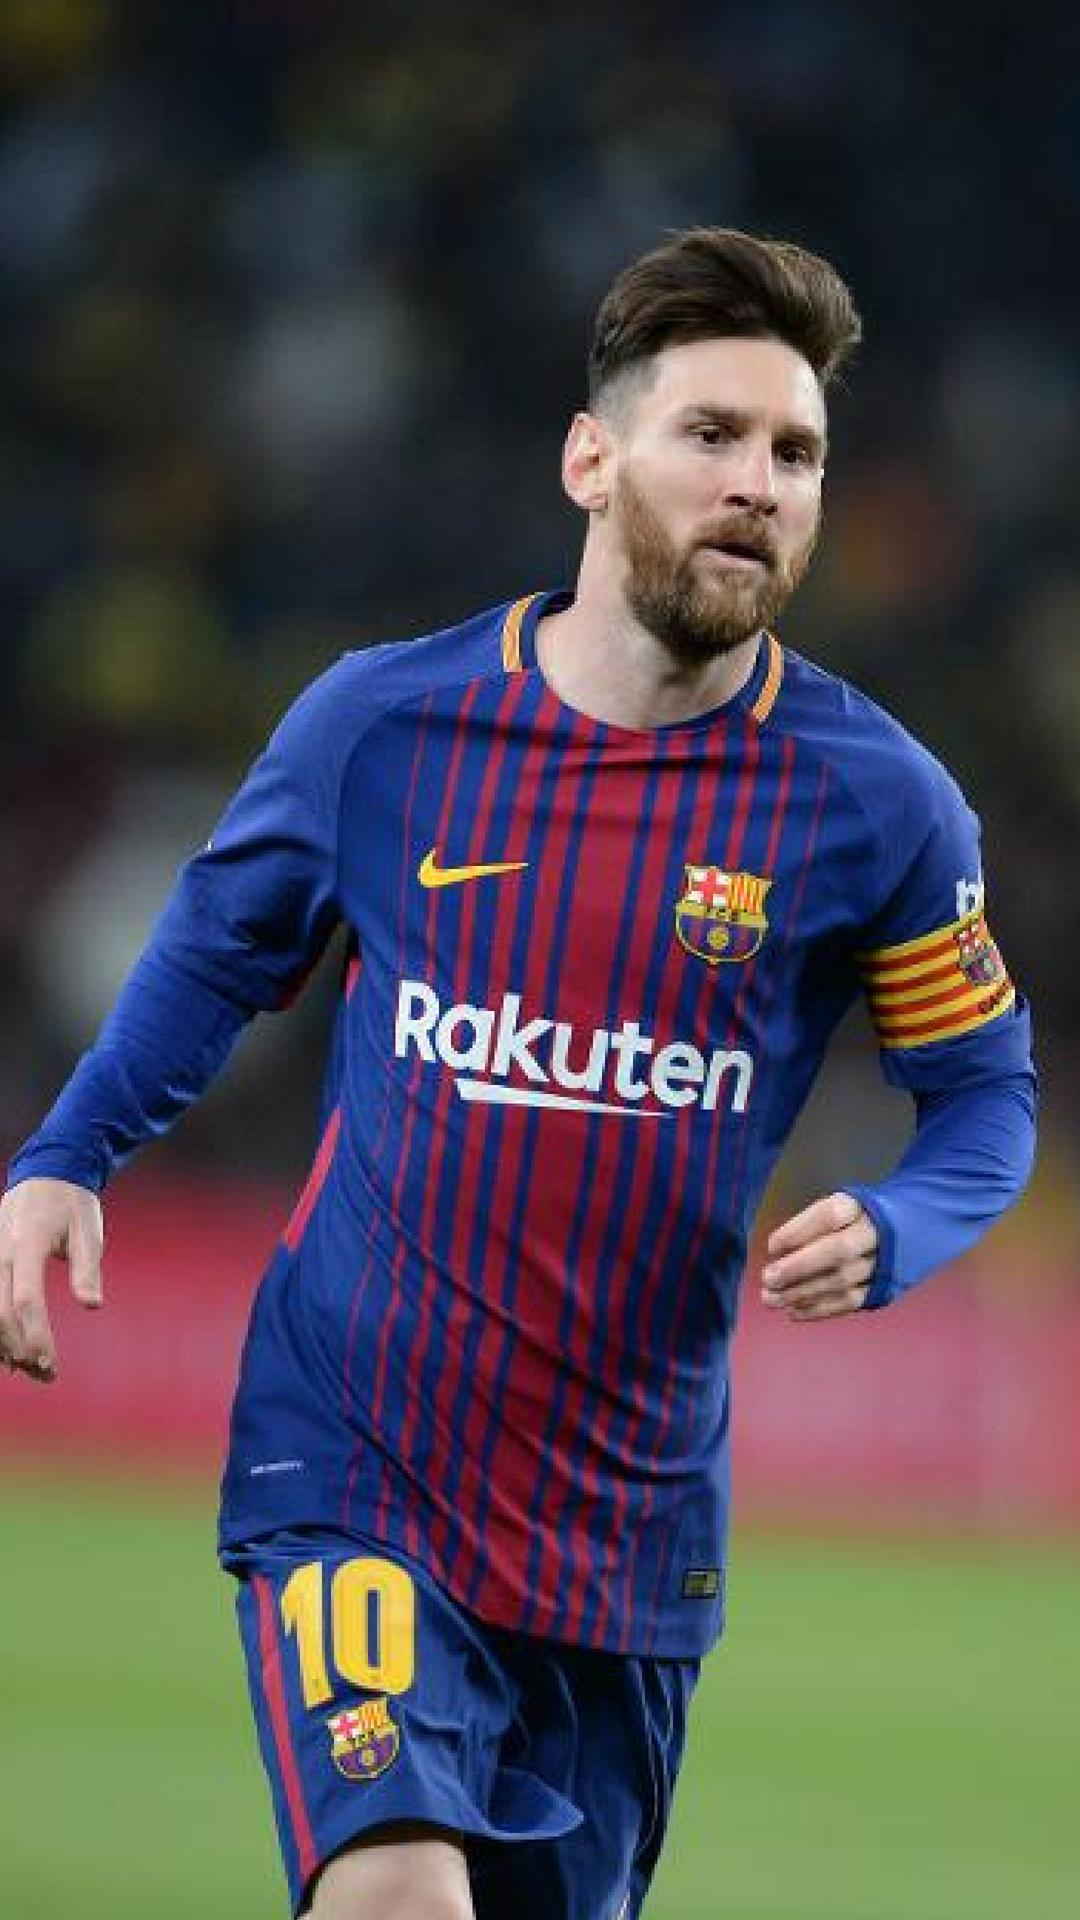 Lionel Messi Wallpapers 4K | Full HD 😍 for Android - APK ...